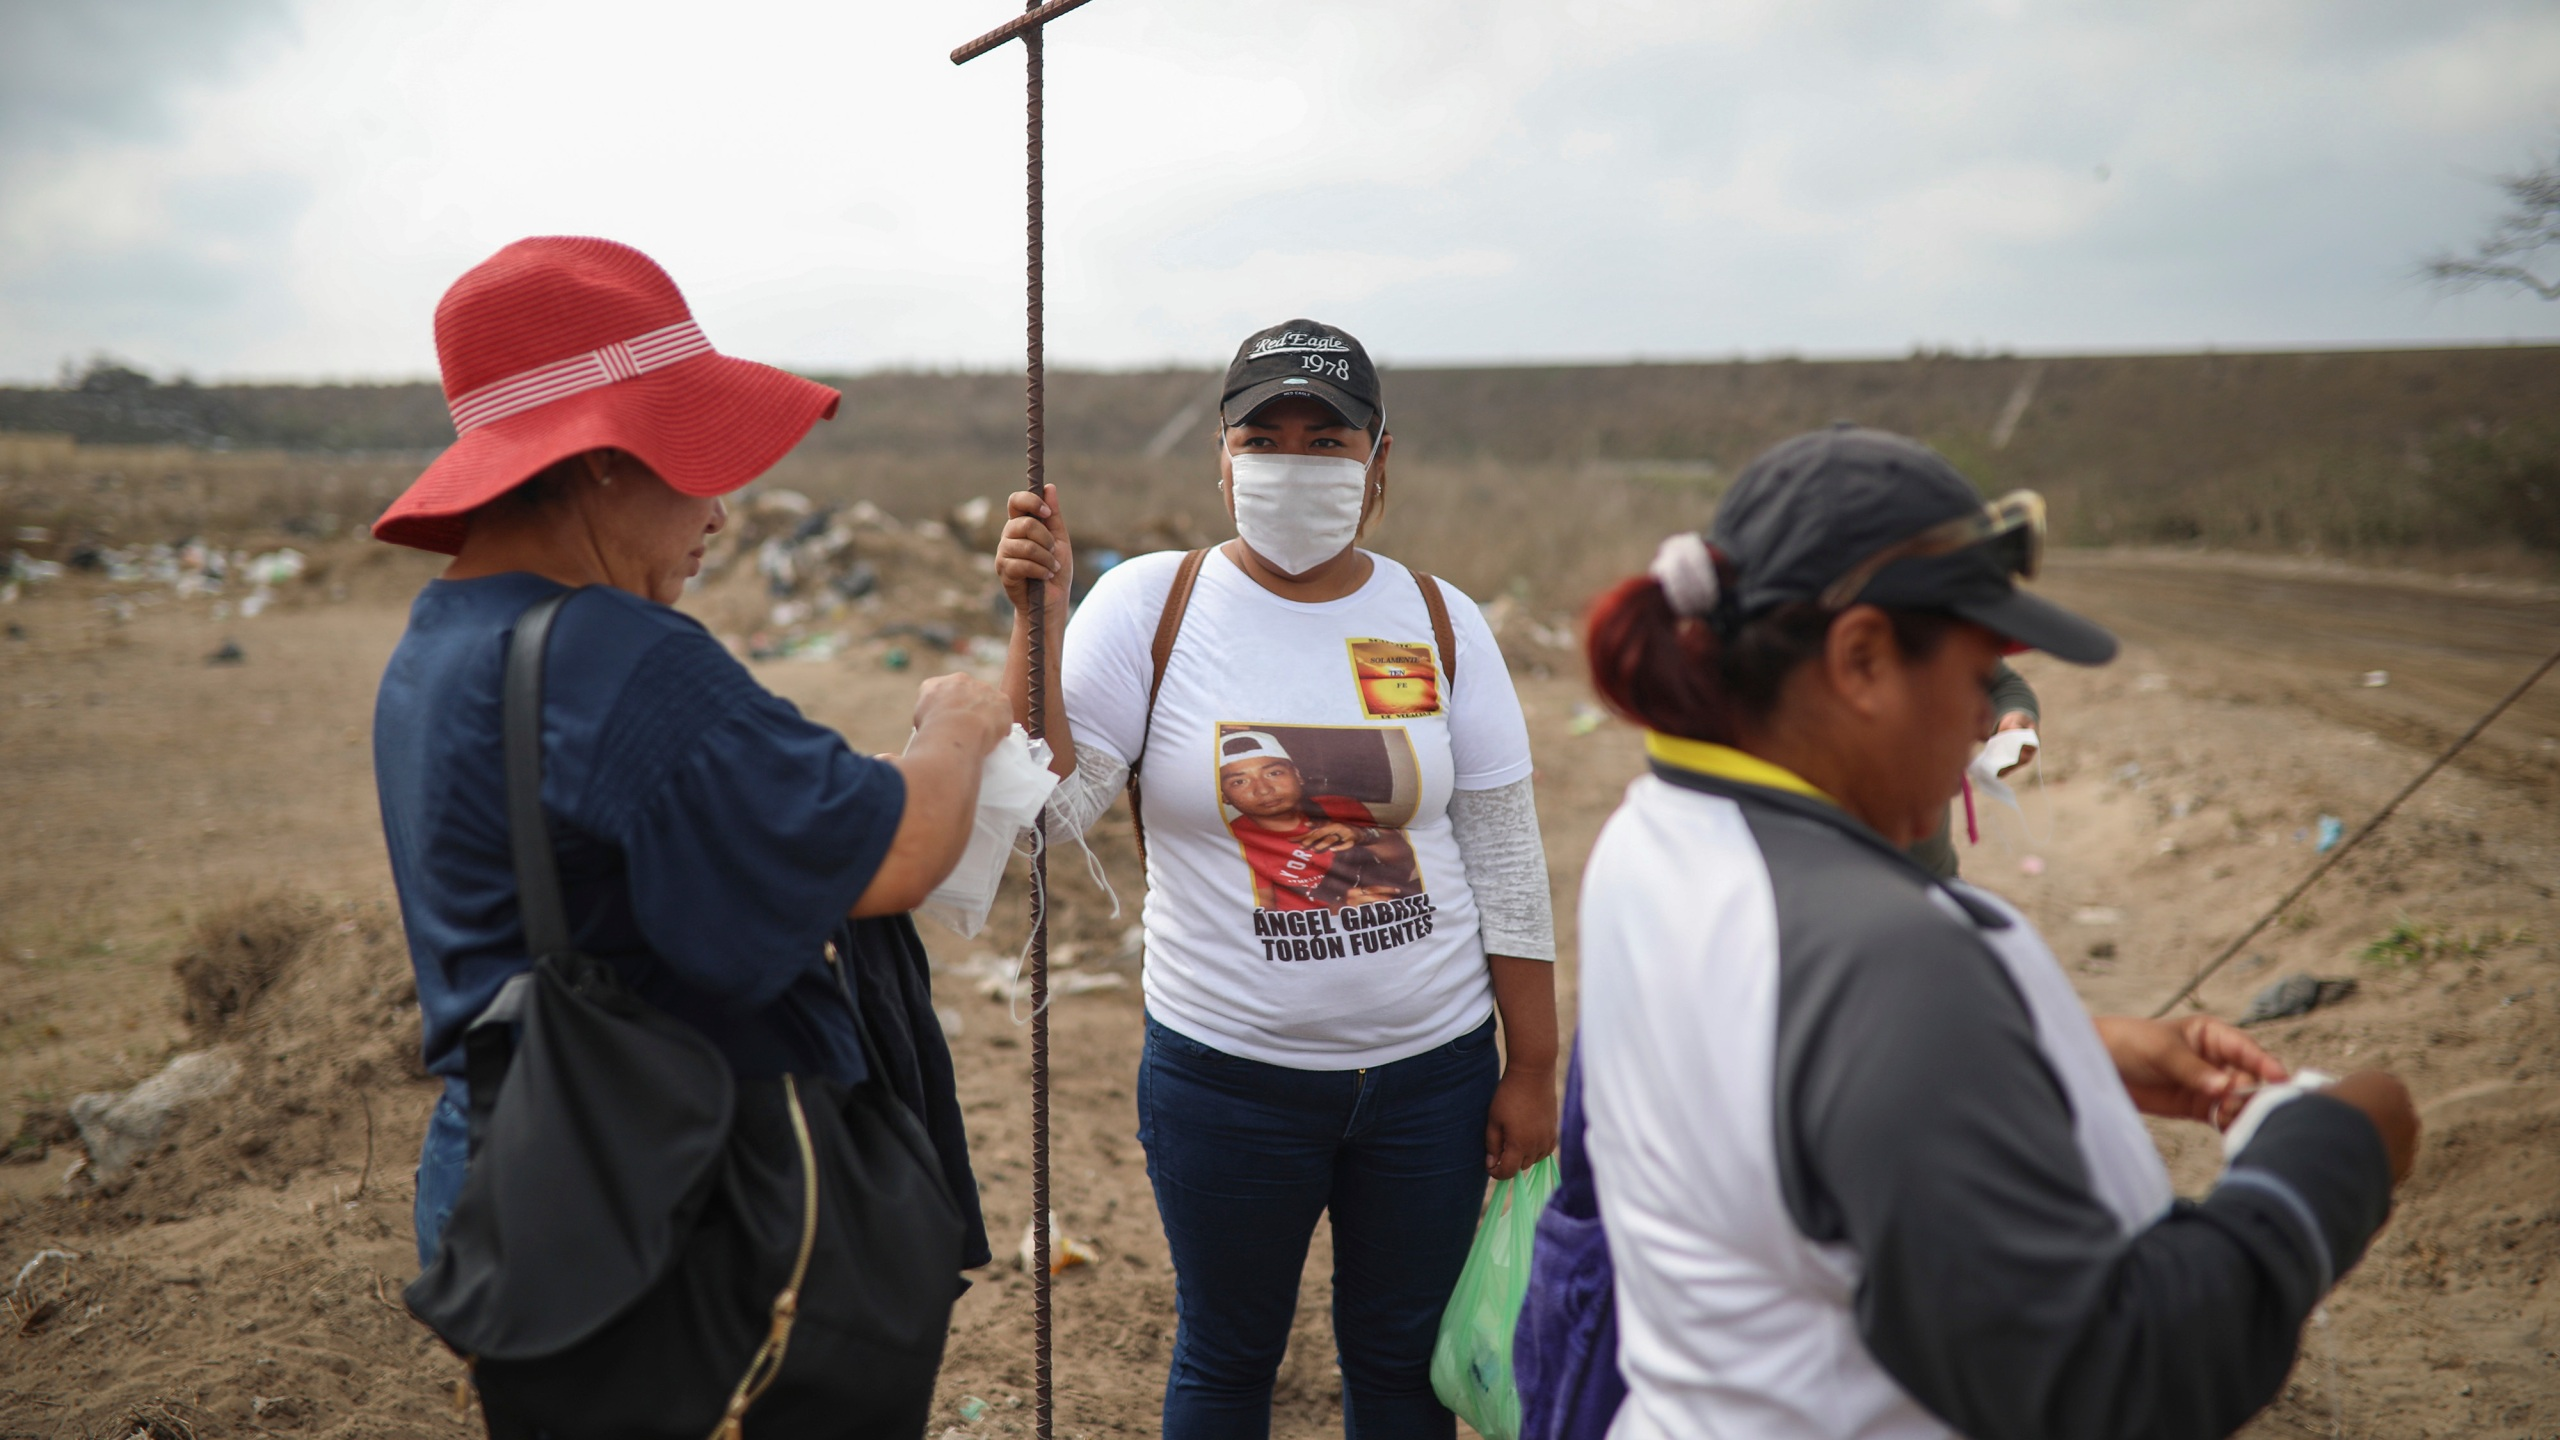 Lidia Lara Tobon, center, whose brother Angel Gabriel Tobon went missing, works with other relatives of the disappeared from the Solecito Collective, as they search for clandestine graves inside a municipal dump on March 11, 2019, after an anonymous source sent the group a map suggesting hundreds of bodies were buried in the area, in the port city of Veracruz, Mexico. (Felix Marquez / Associated Press)